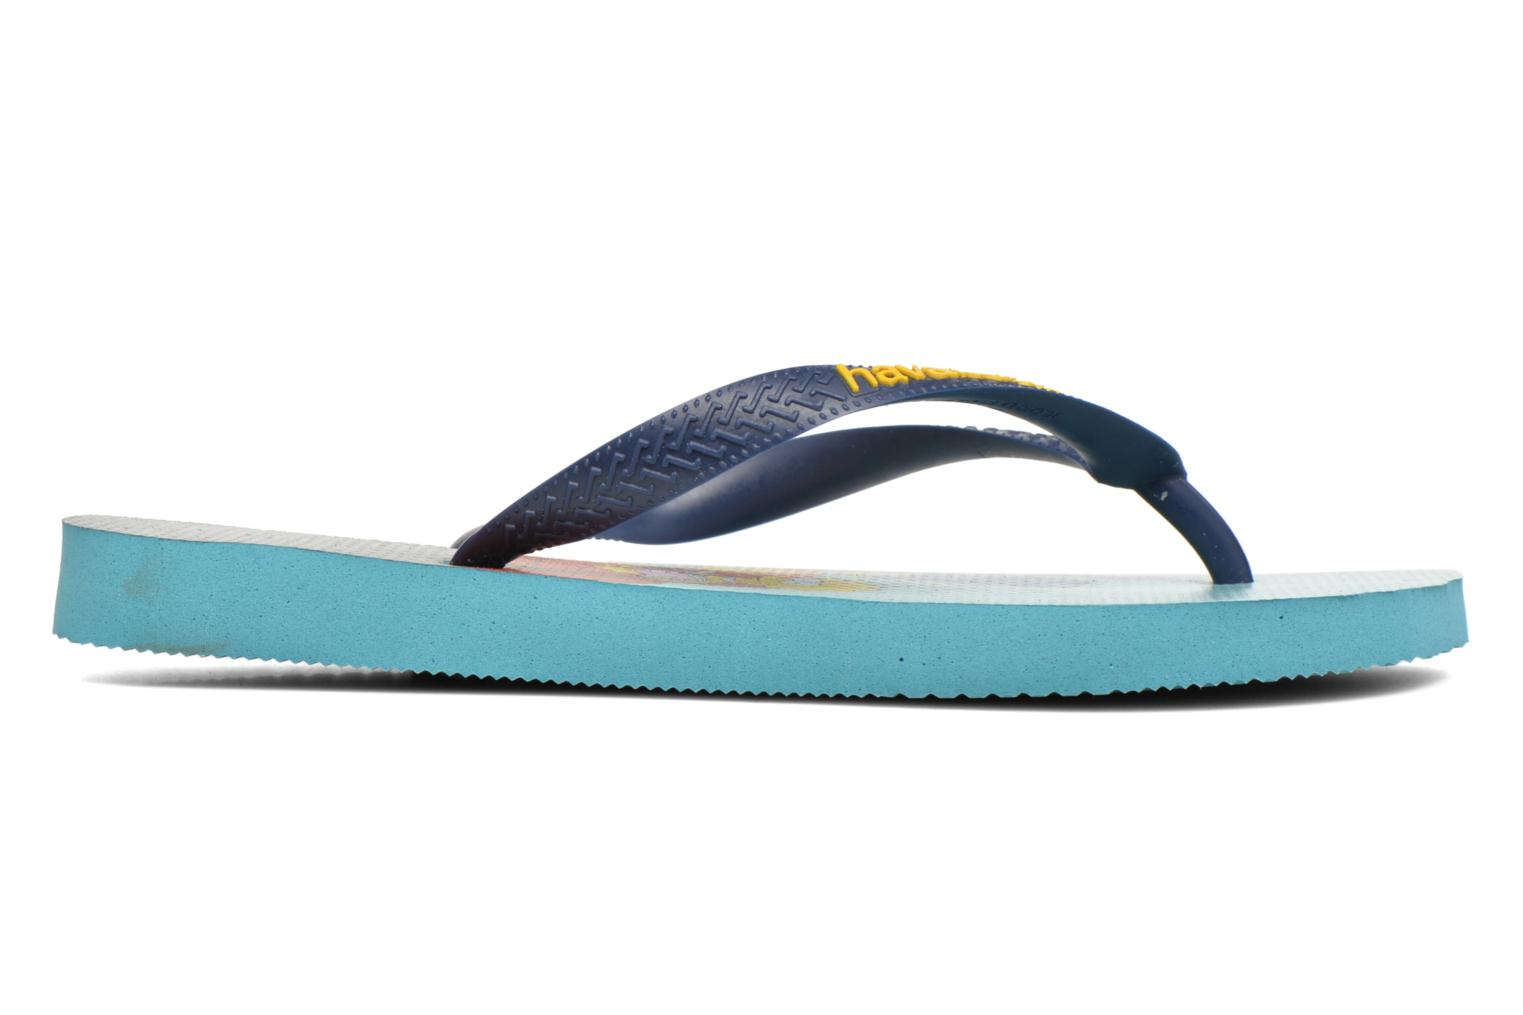 Simpsons Havaianas Blue Havaianas Simpsons xZnwr6ZXq